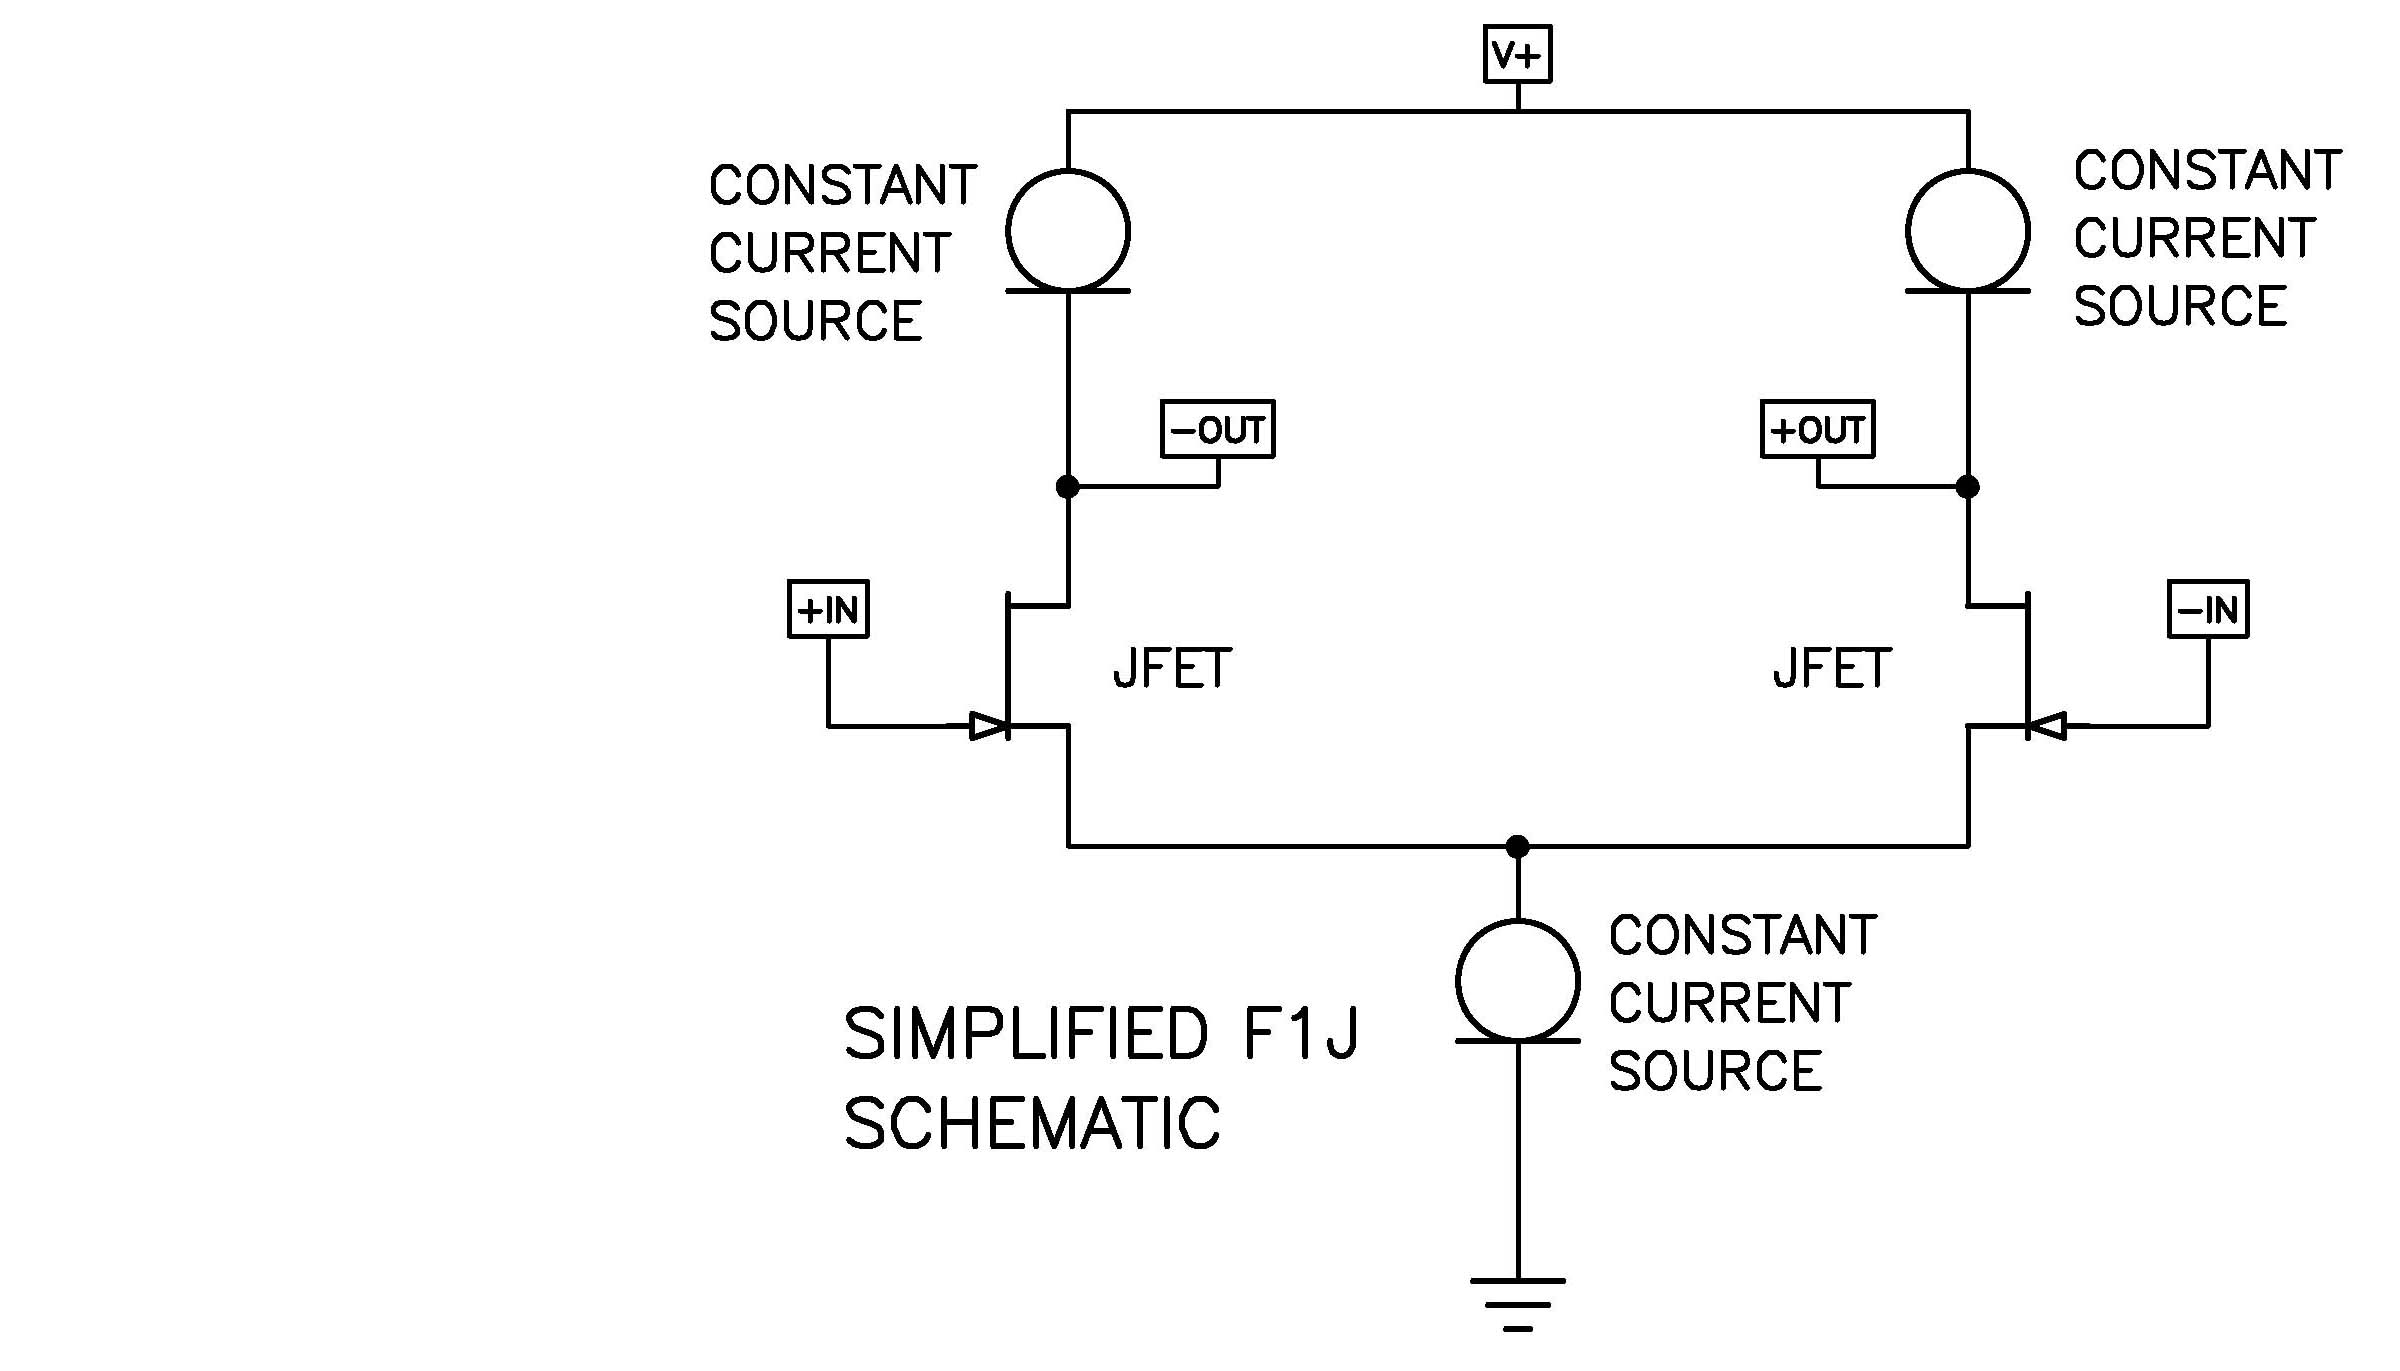 First Watt Constant Current Source Circuit Diagram In Addition There Have Been Changes To Several Resistor Values And Removal Of The Input Zener Protection Diodes As With F1 Simplified